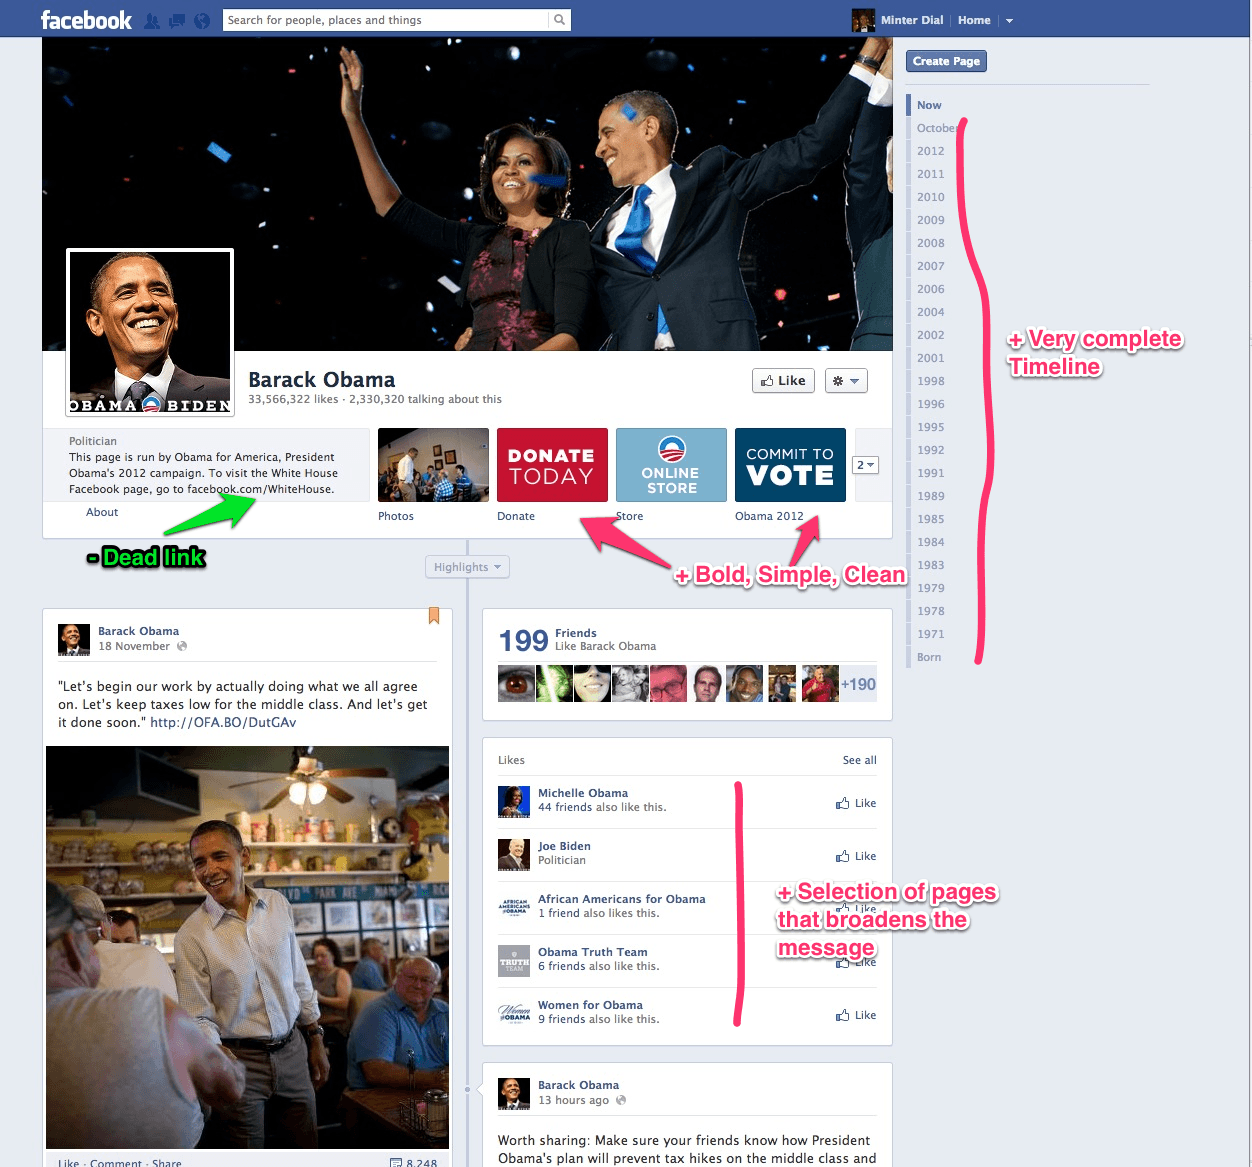 Barack Obama facebook page analysis, The Myndset Digital Marketing and Brand Strategy